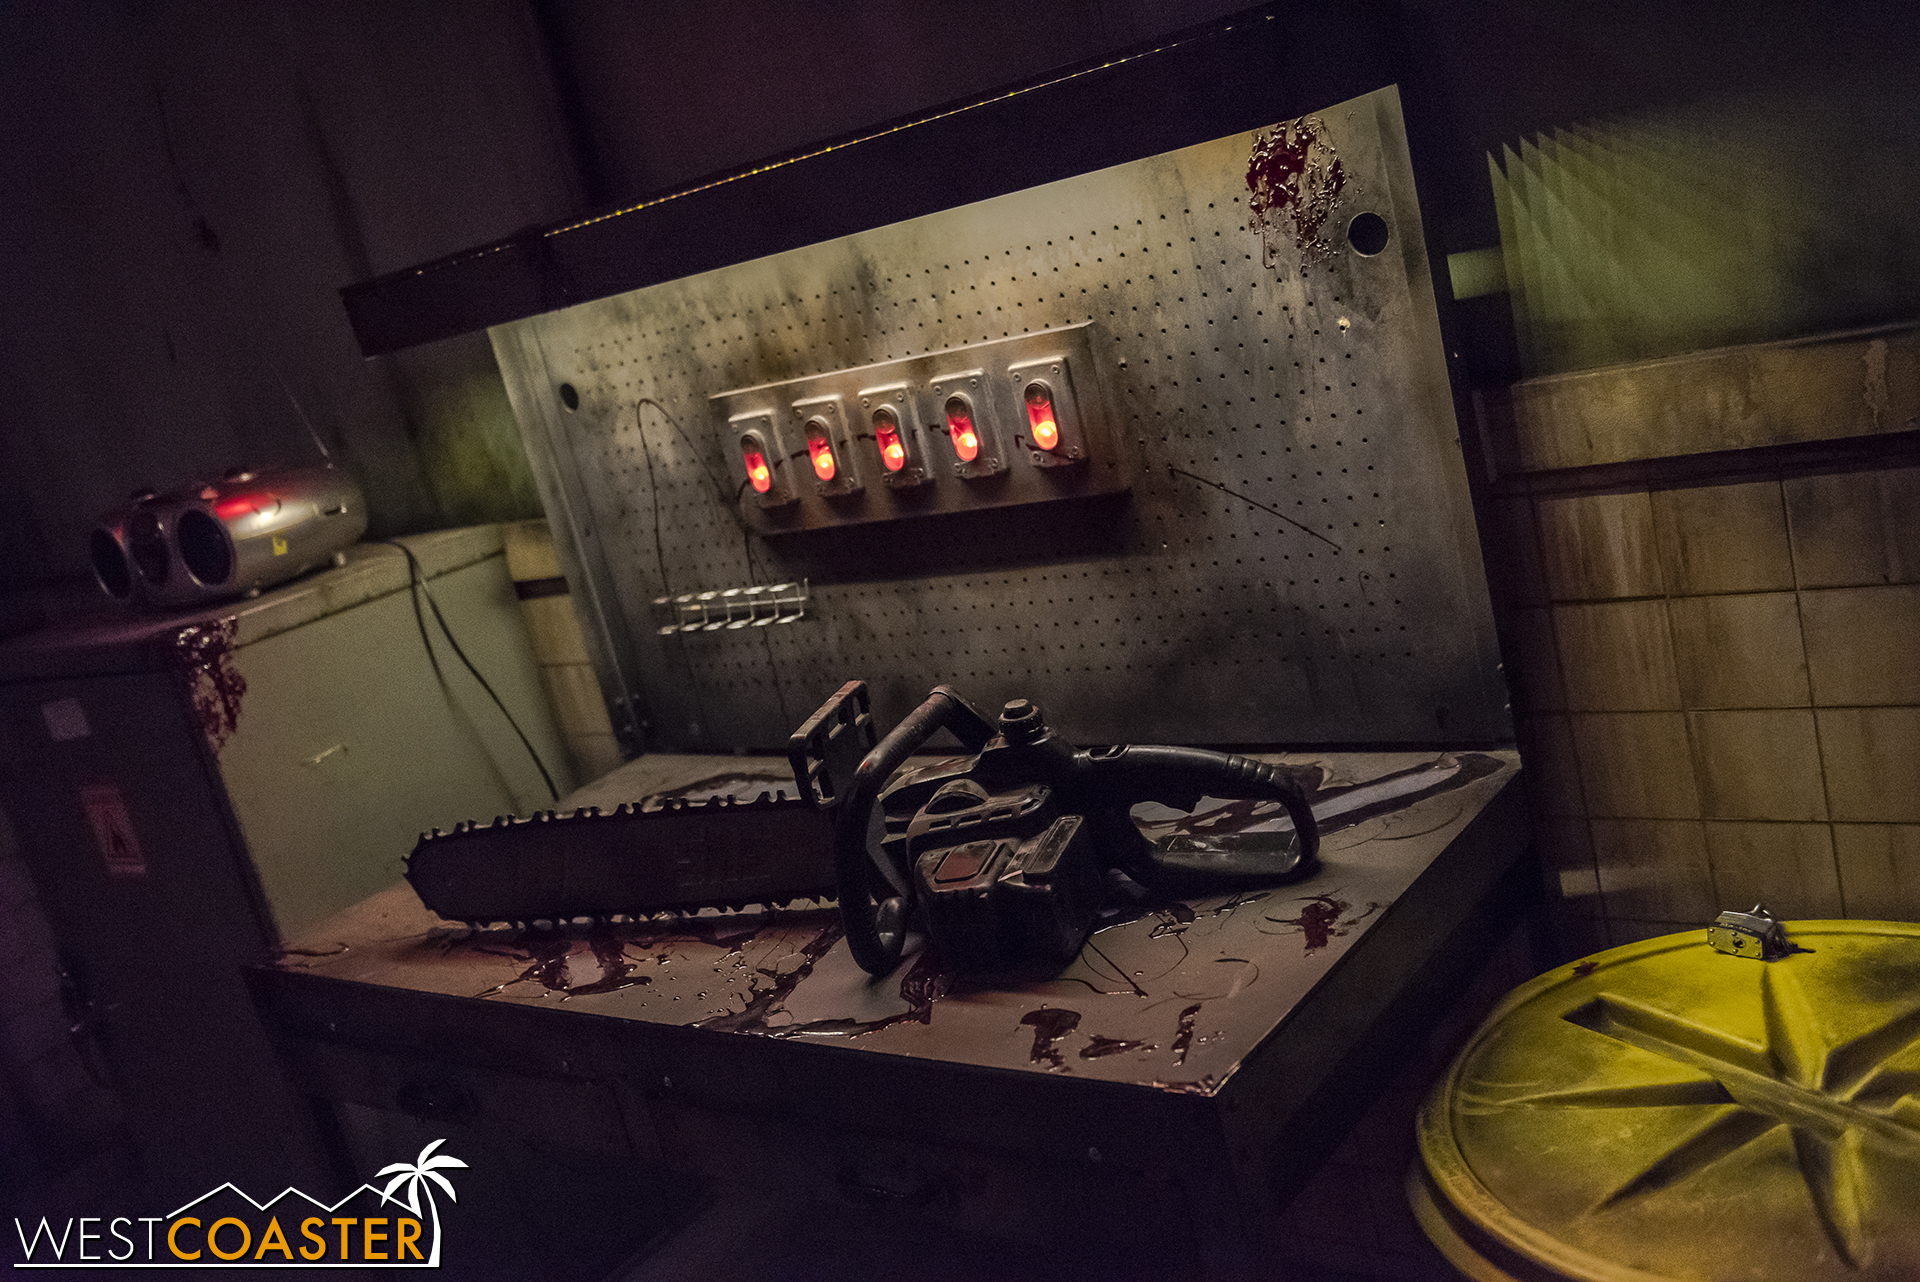 What's in this escape room? Murder!